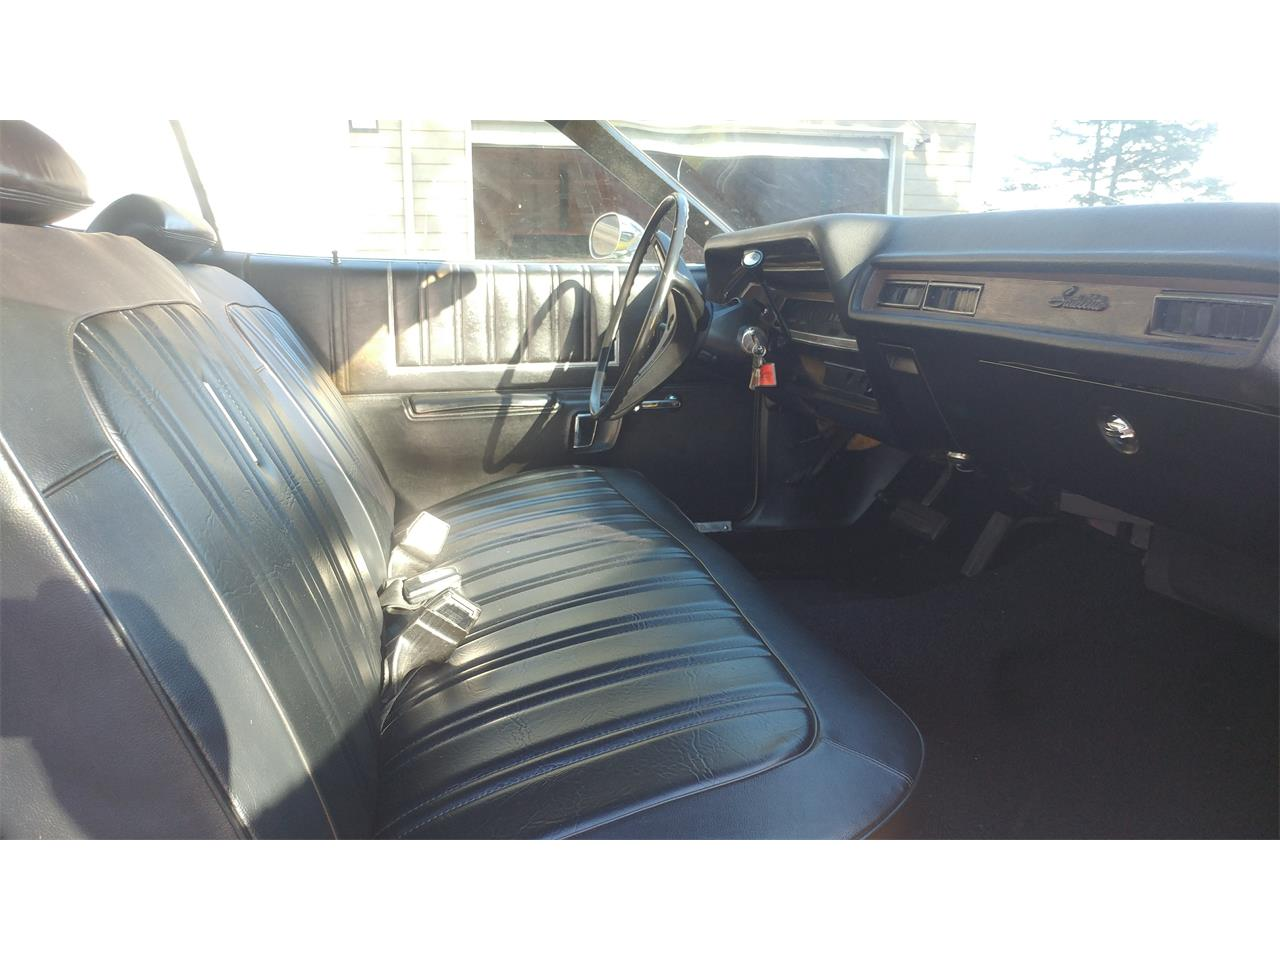 1973 Plymouth Satellite (CC-1382274) for sale in Demotte, Indiana